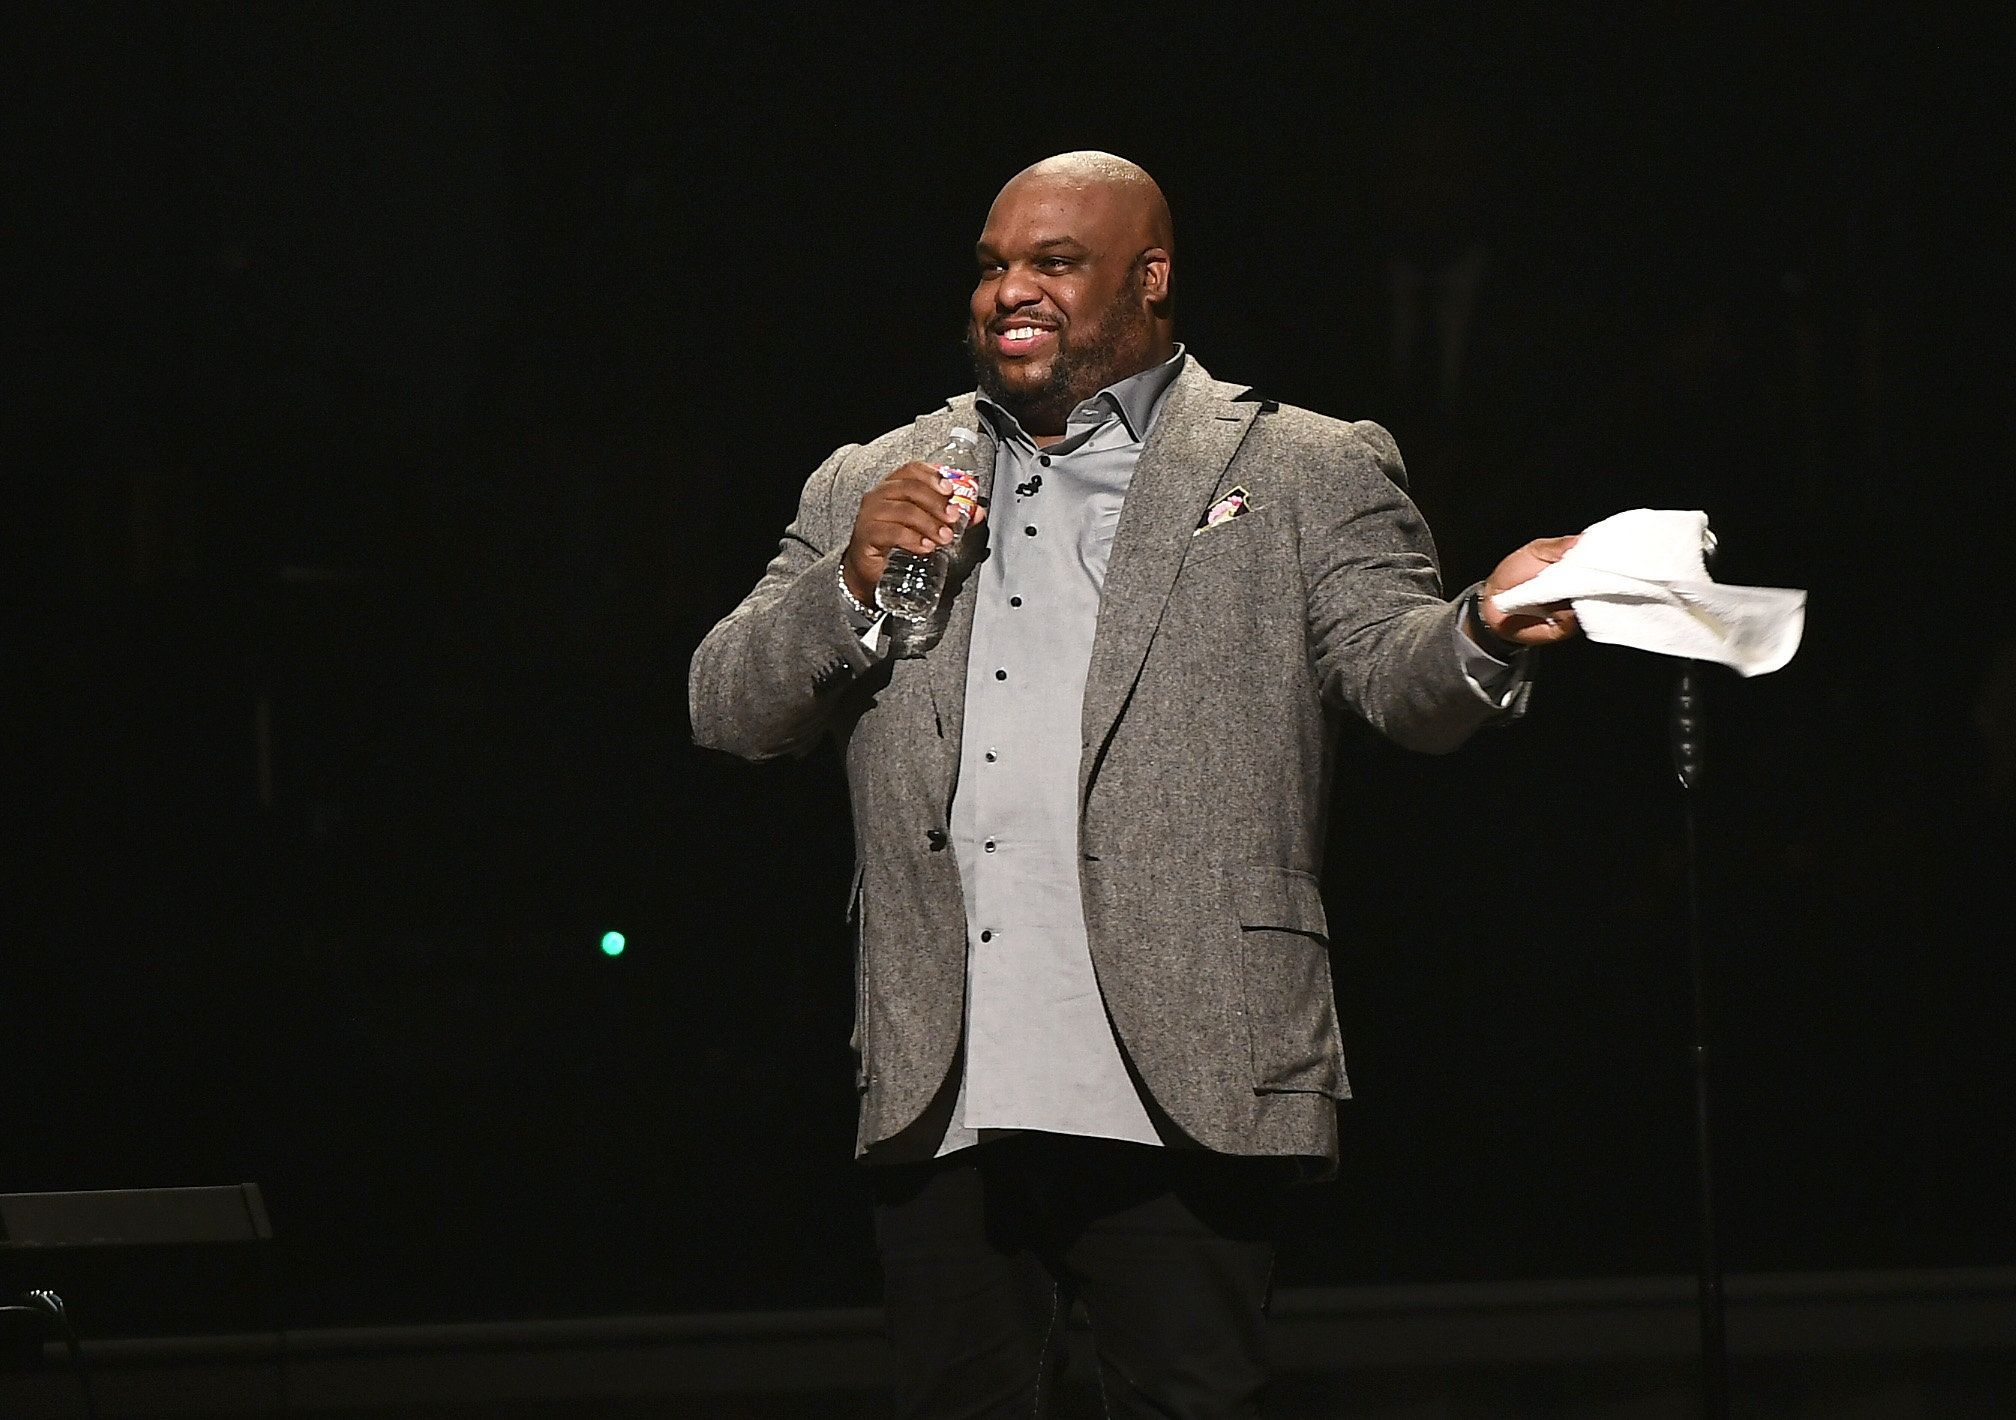 John Gray speaks at Lakewood Church on in February 2017 in Houston. After being criticized for giving a luxury SUV